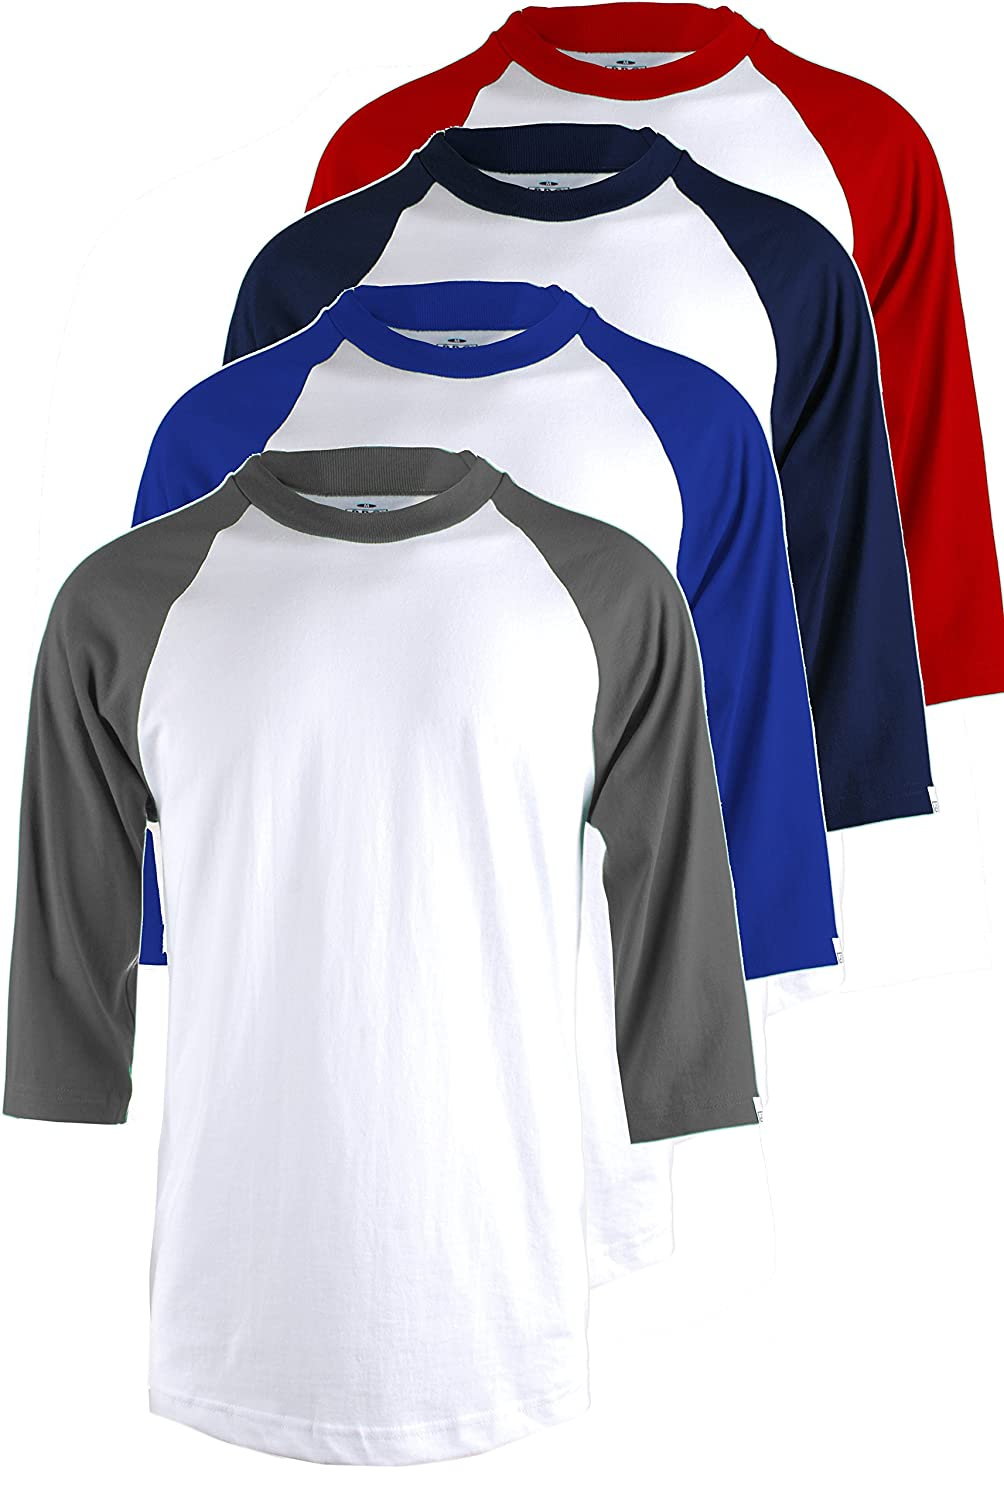 TL Men's 4 Pack 3/4 Sleeve Baseball Cotton Crew Neck Jersey Raglan Tee Shirts